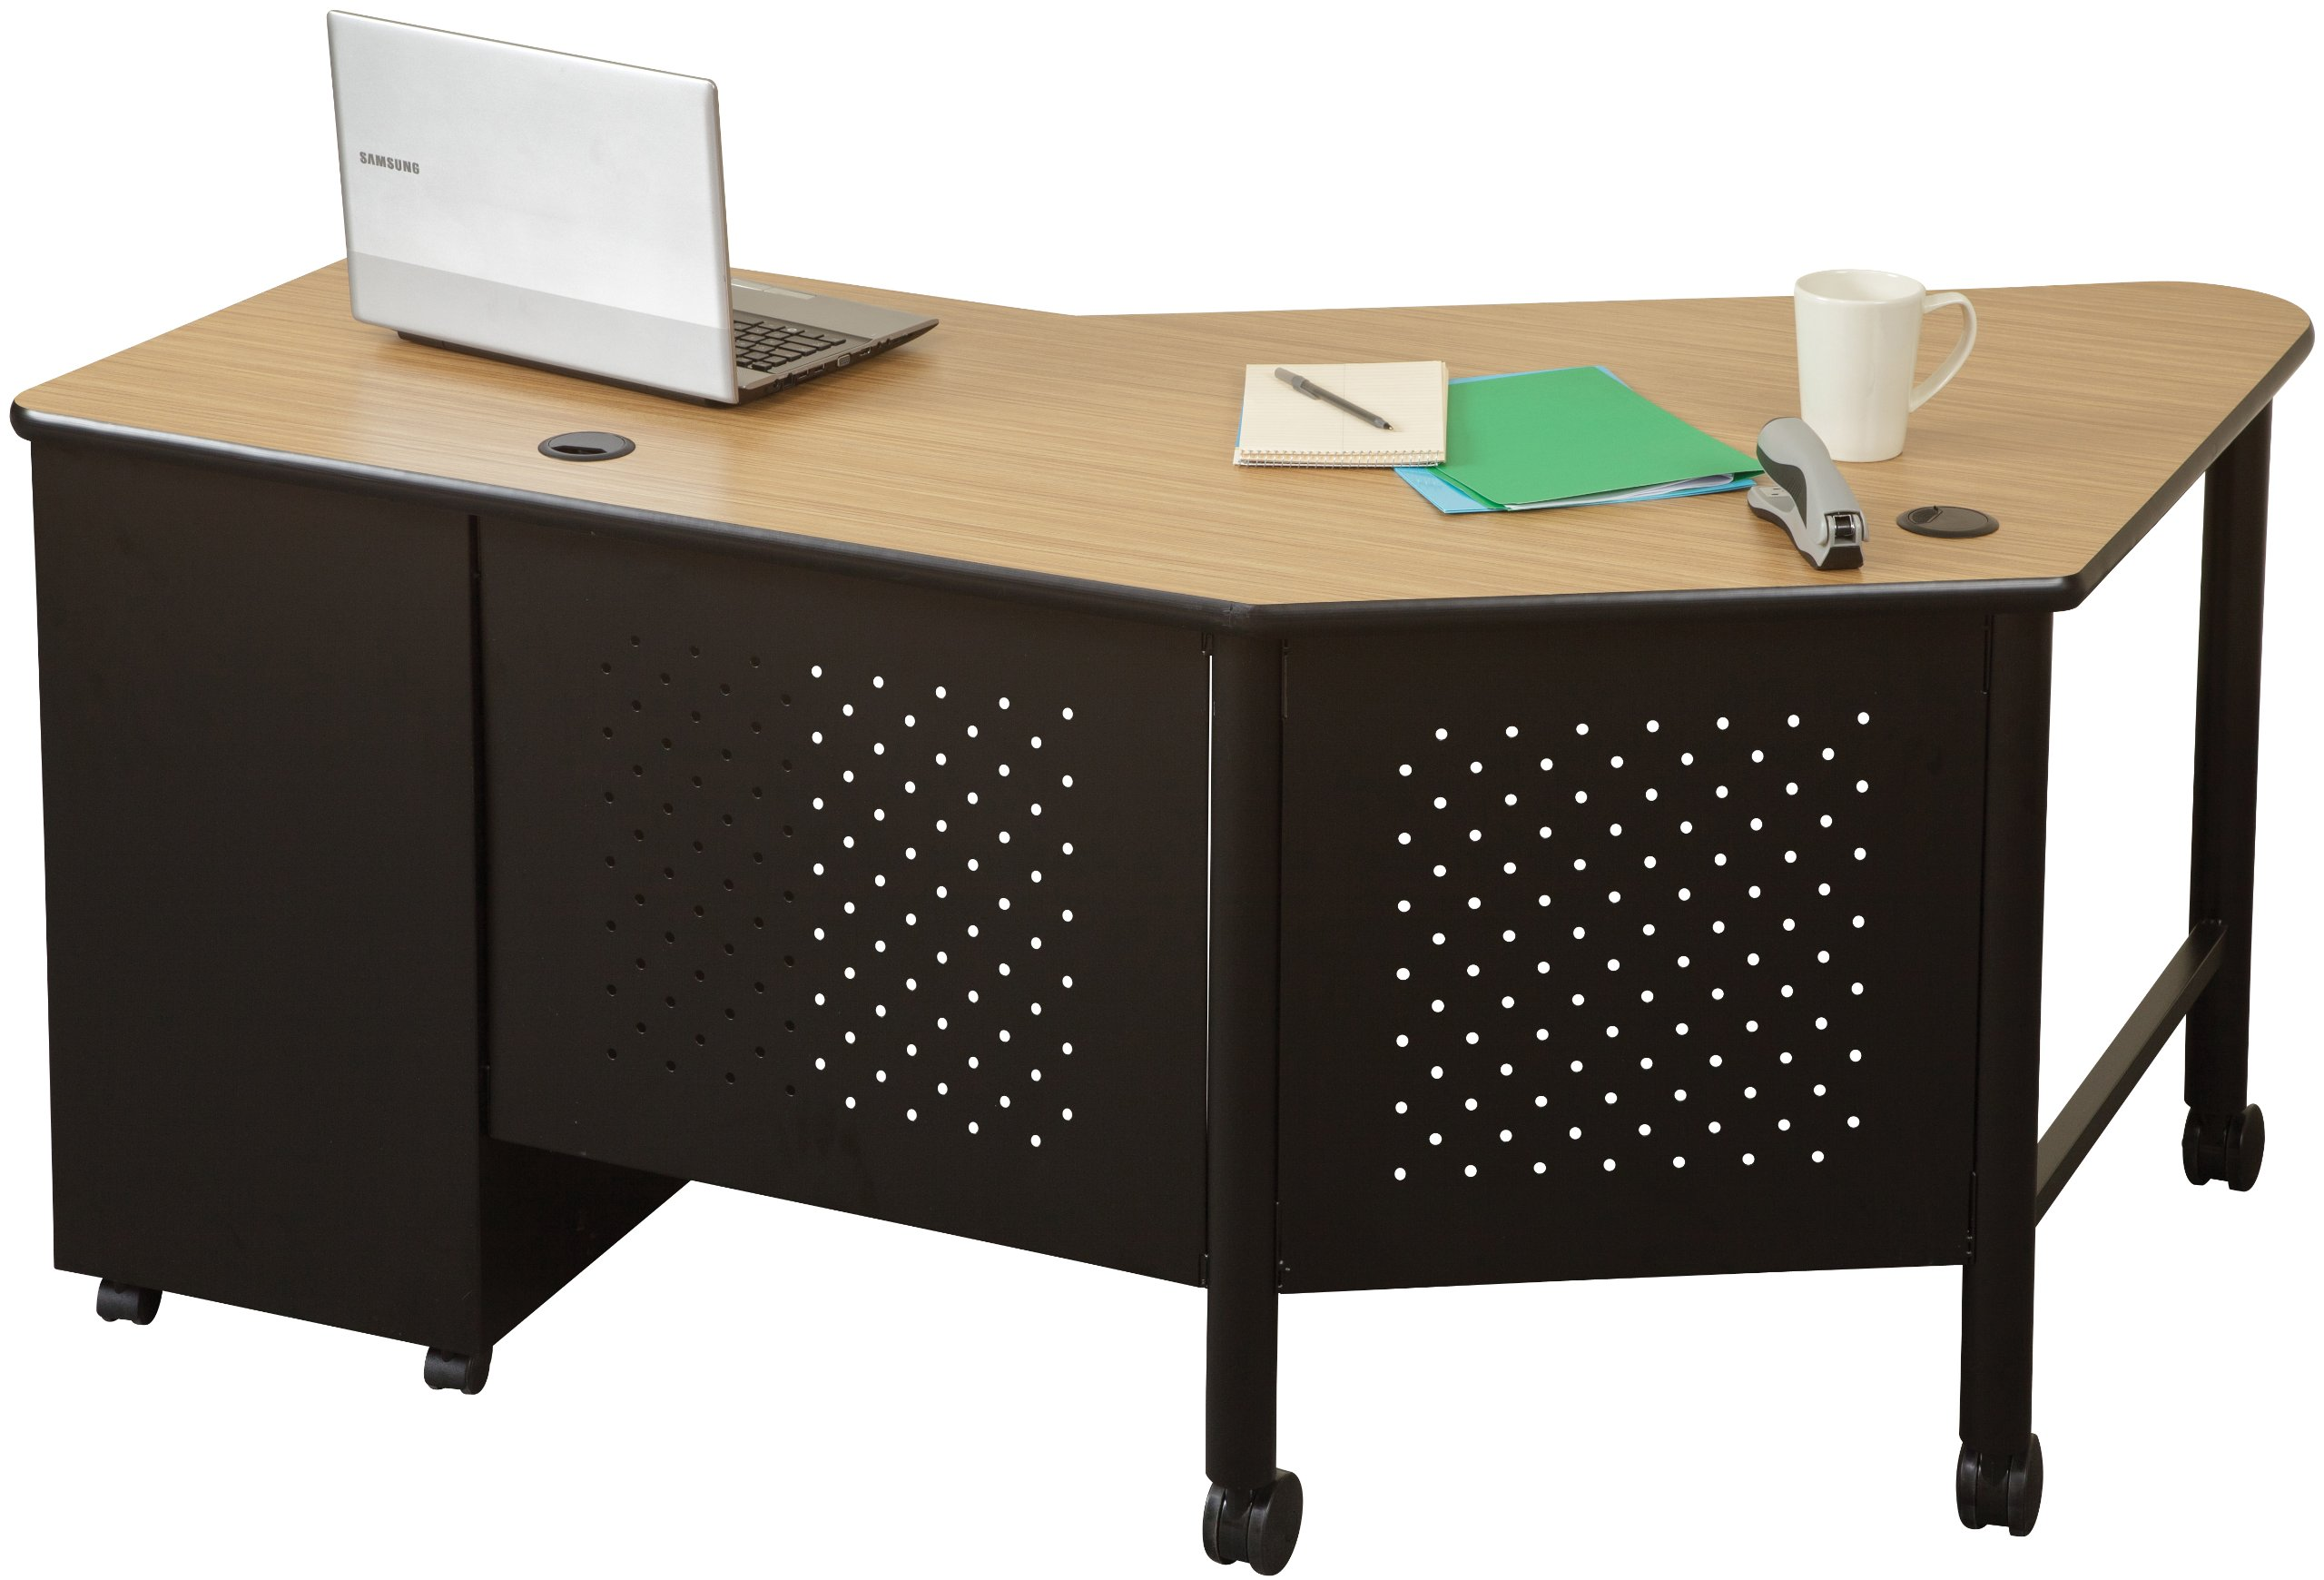 Balt Instructor Teacher's Desk, Oak